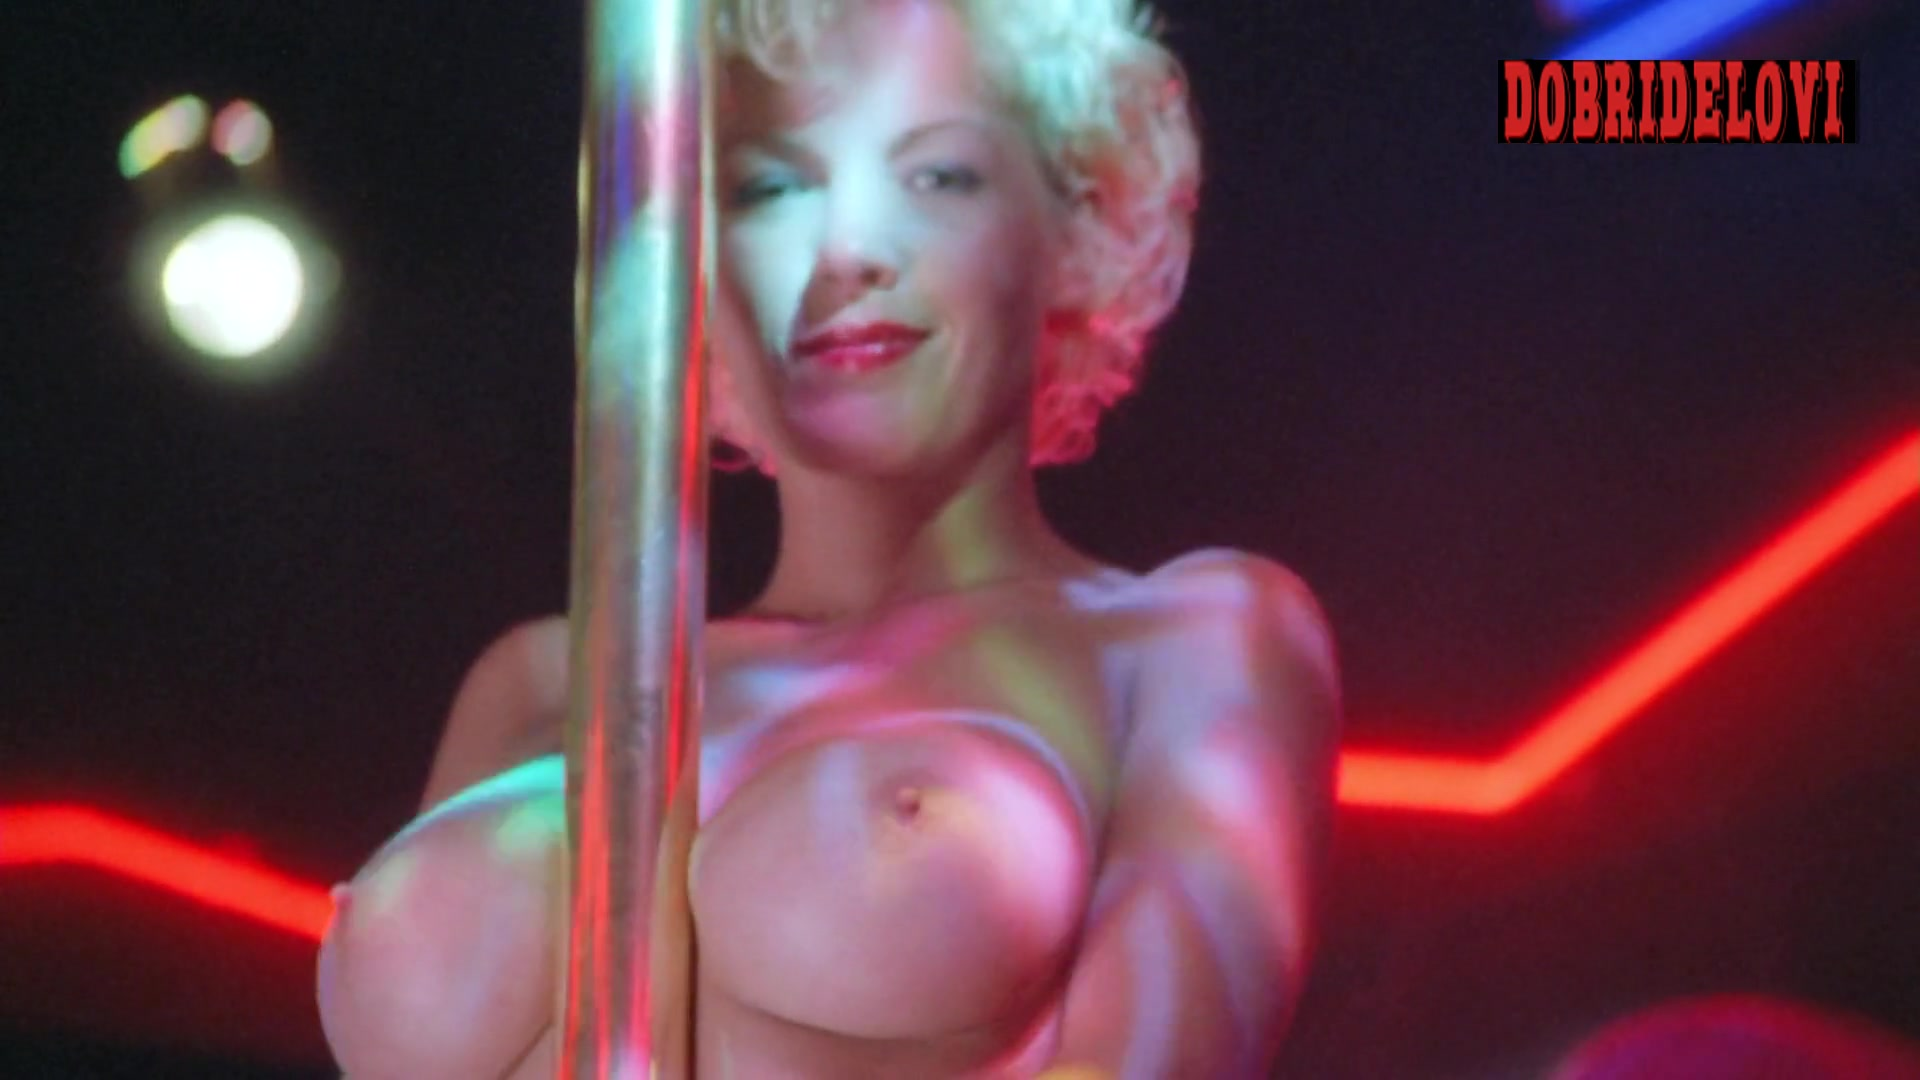 Julie K. Smith pole dancing scene from L.E.T.H.A.L. Ladies: Return to Savage Beach